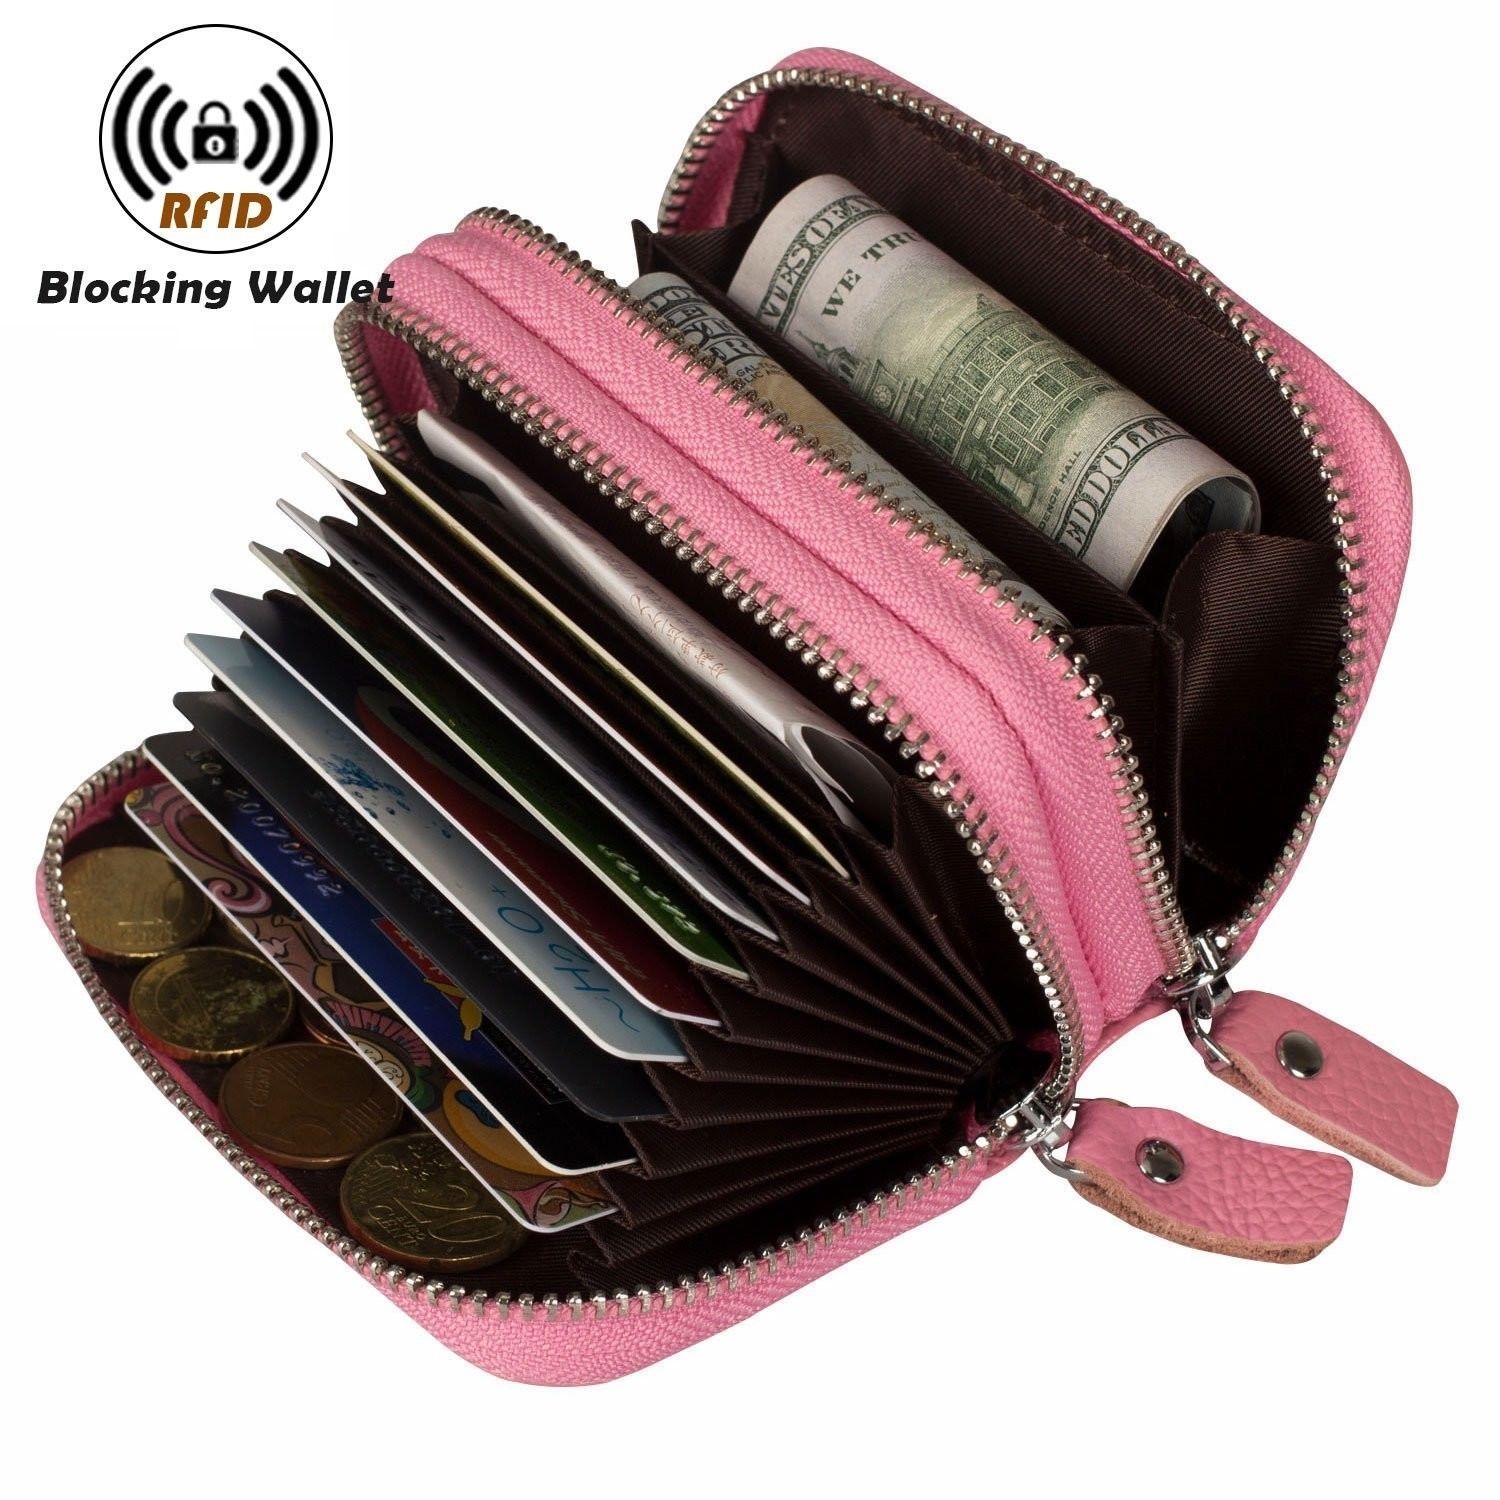 Genuine Leather Wallet Latest Credit Card Safe Holder/Case/ Small Purses Pink